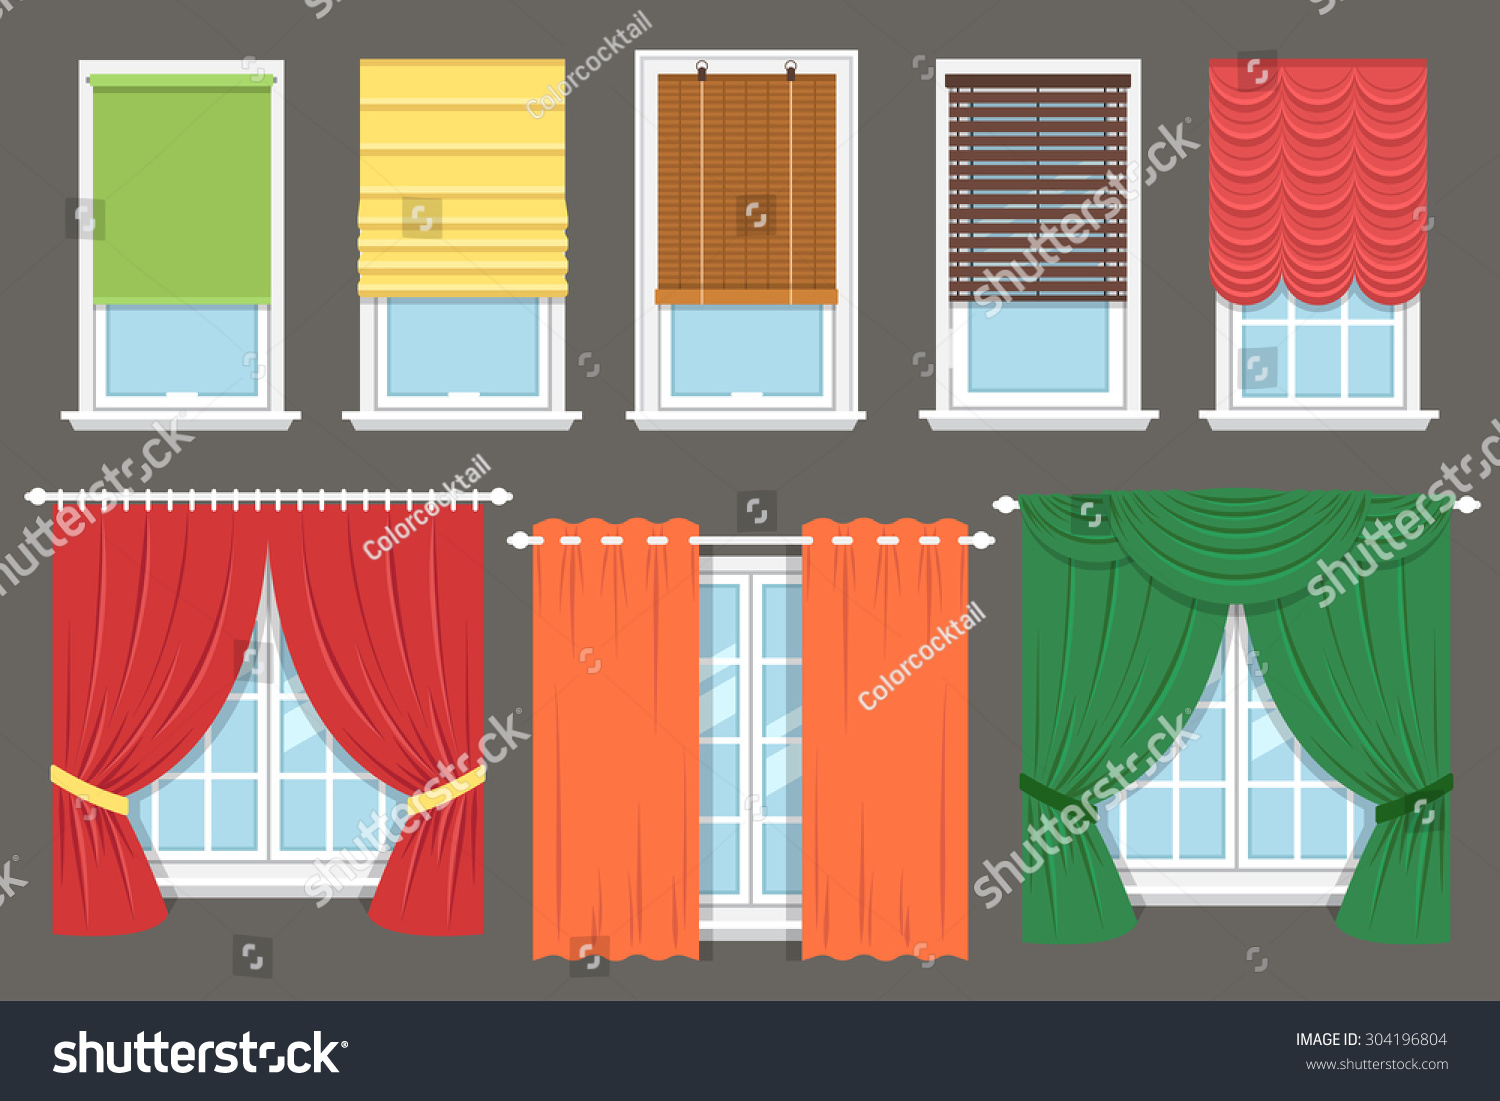 Vector Collection Various Window Treatments Curtains Stock Vector ... for Window With Curtains Illustration  557yll